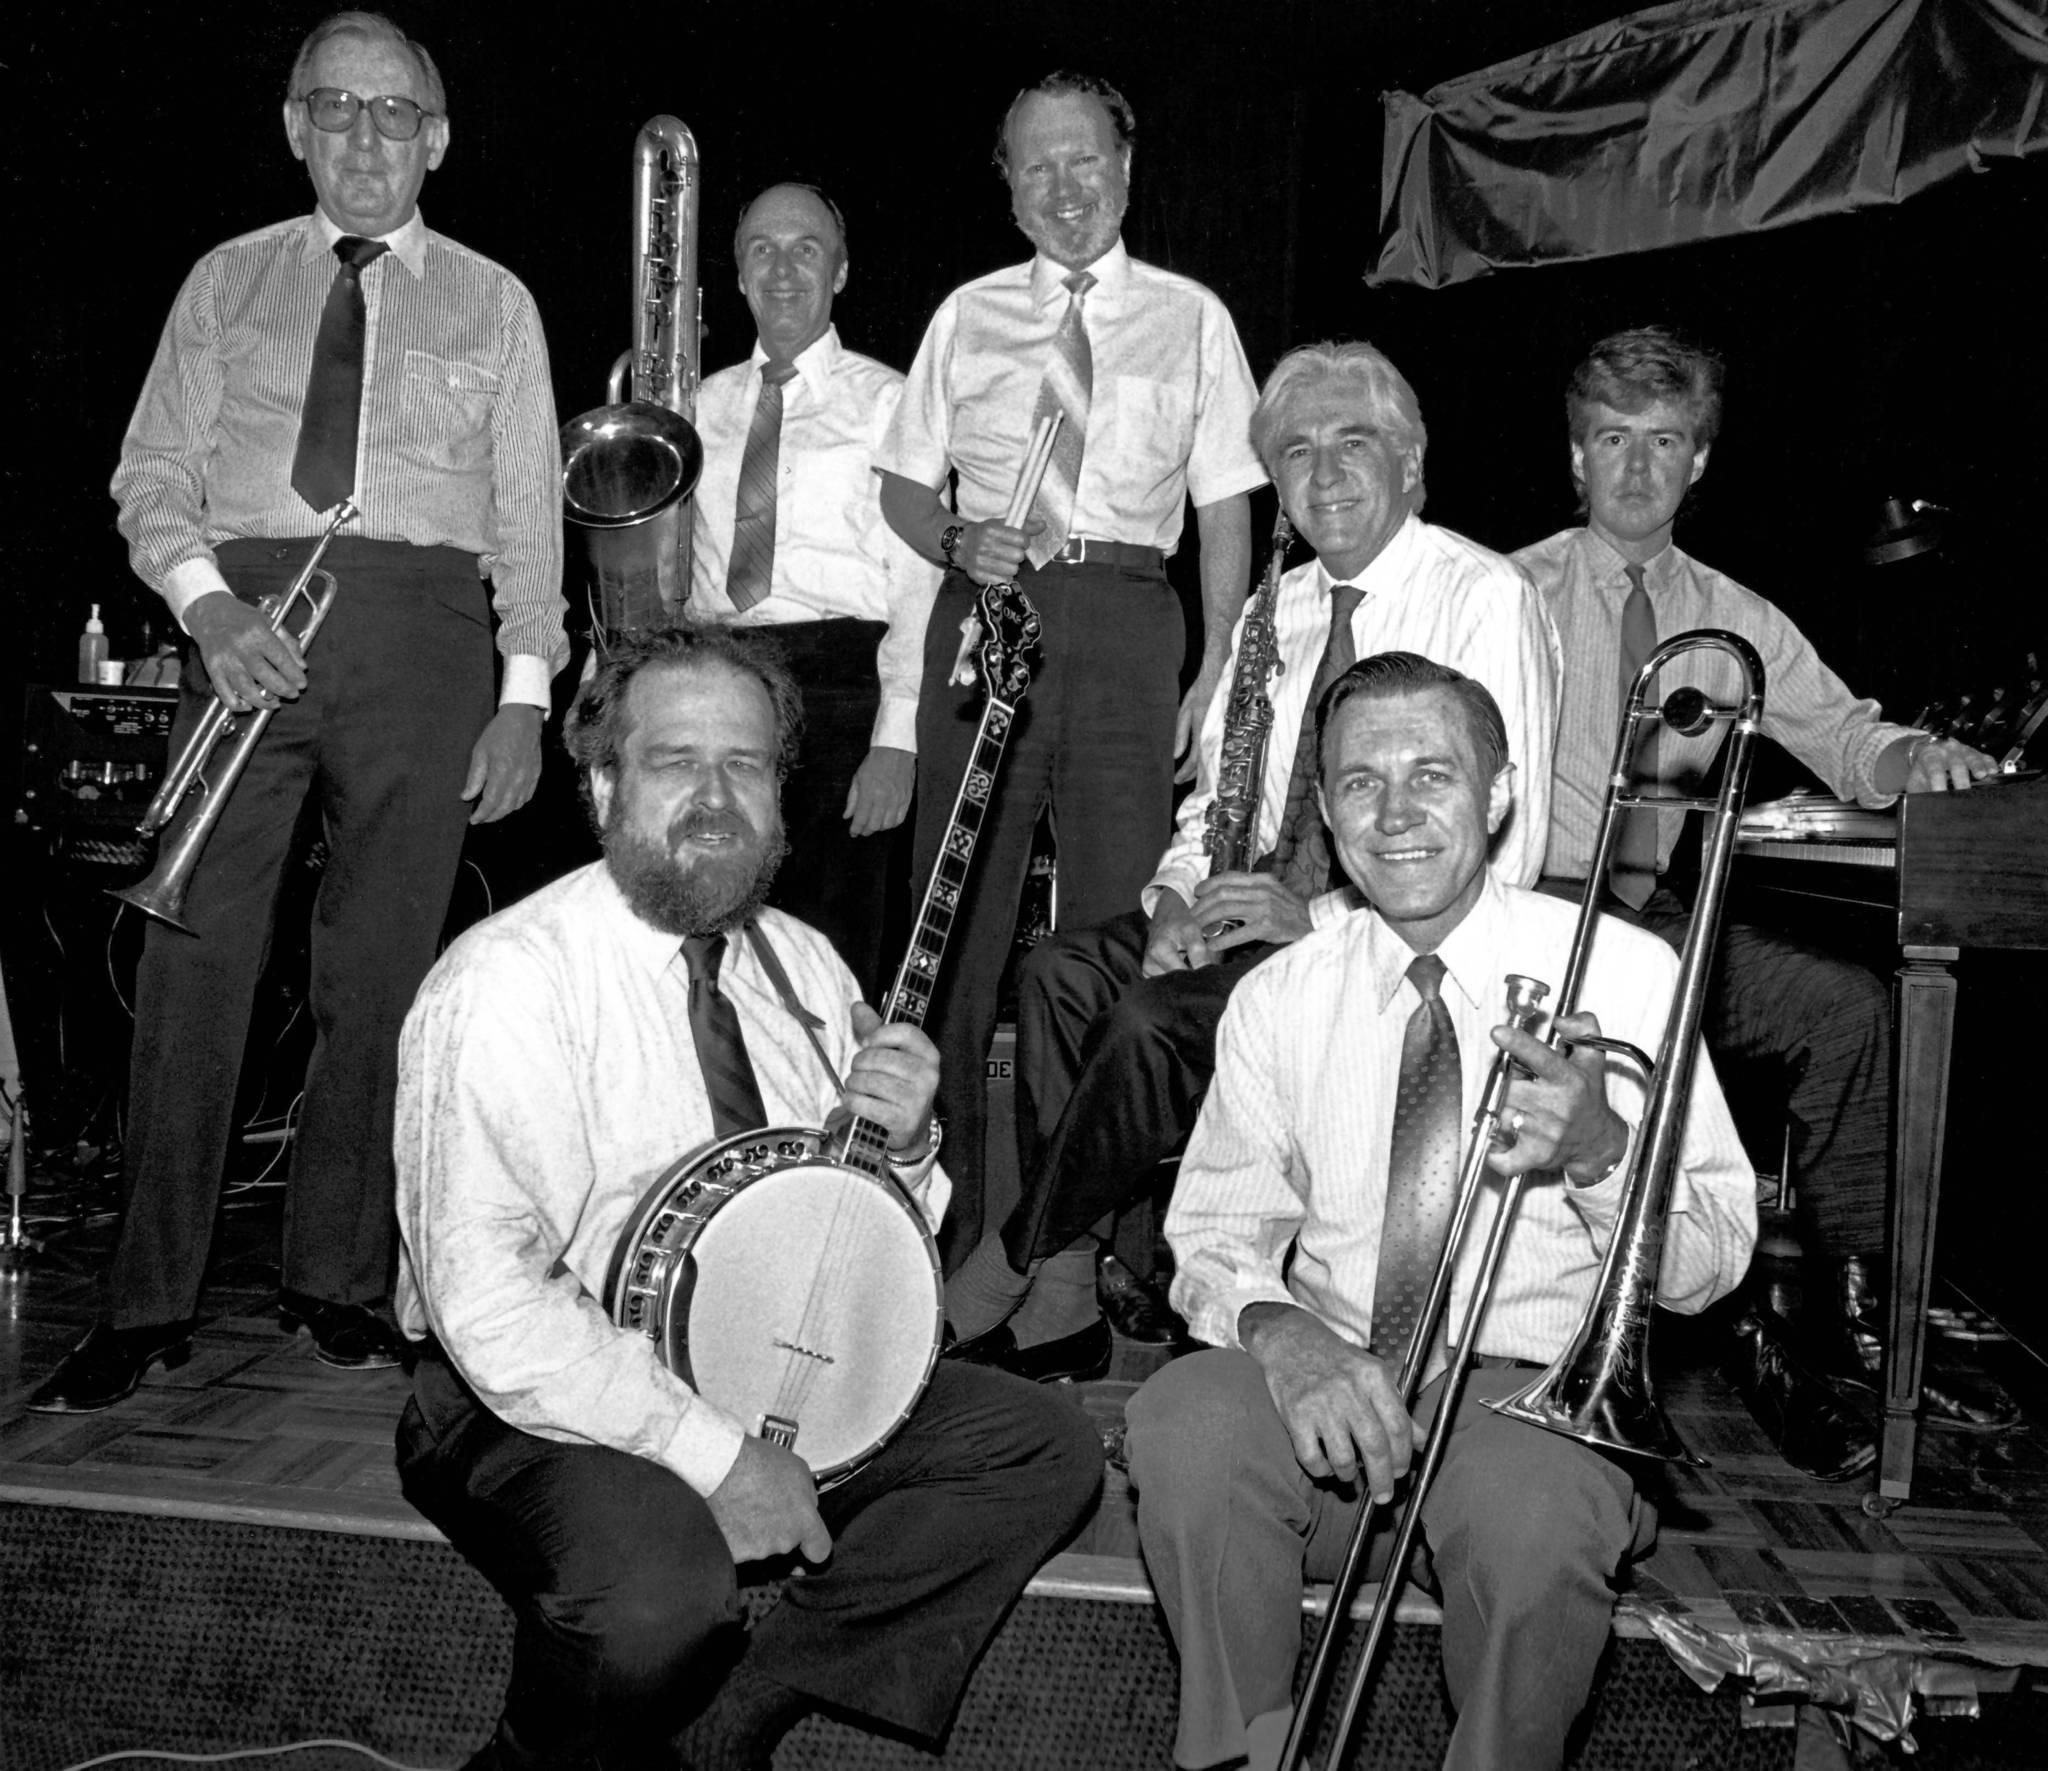 Don Nelson, second from right in back row, performed in the 1980s and '90s as a soprano saxophonist, vocalist and composer for the Los Angeles-based Great Pacific Jazz Band. Also shown in 1987 are band members, back row from left, Rubin Zarchy, Jack Wadsworth, Burr Middleton and Jim...